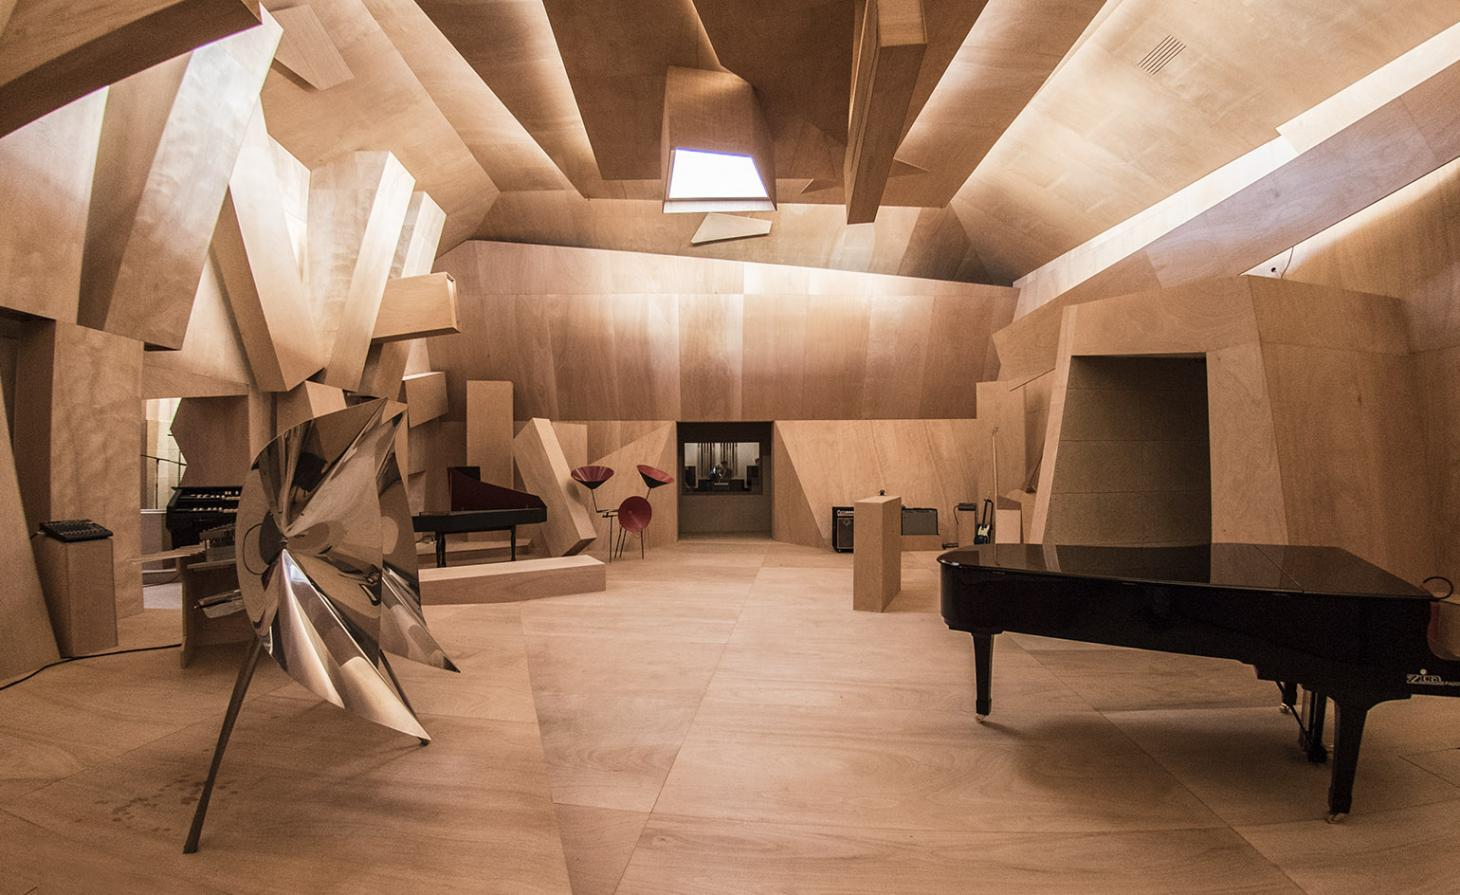 Art of noise: Xavier Veilhan's live sound experiment hits all the high notes in Venice